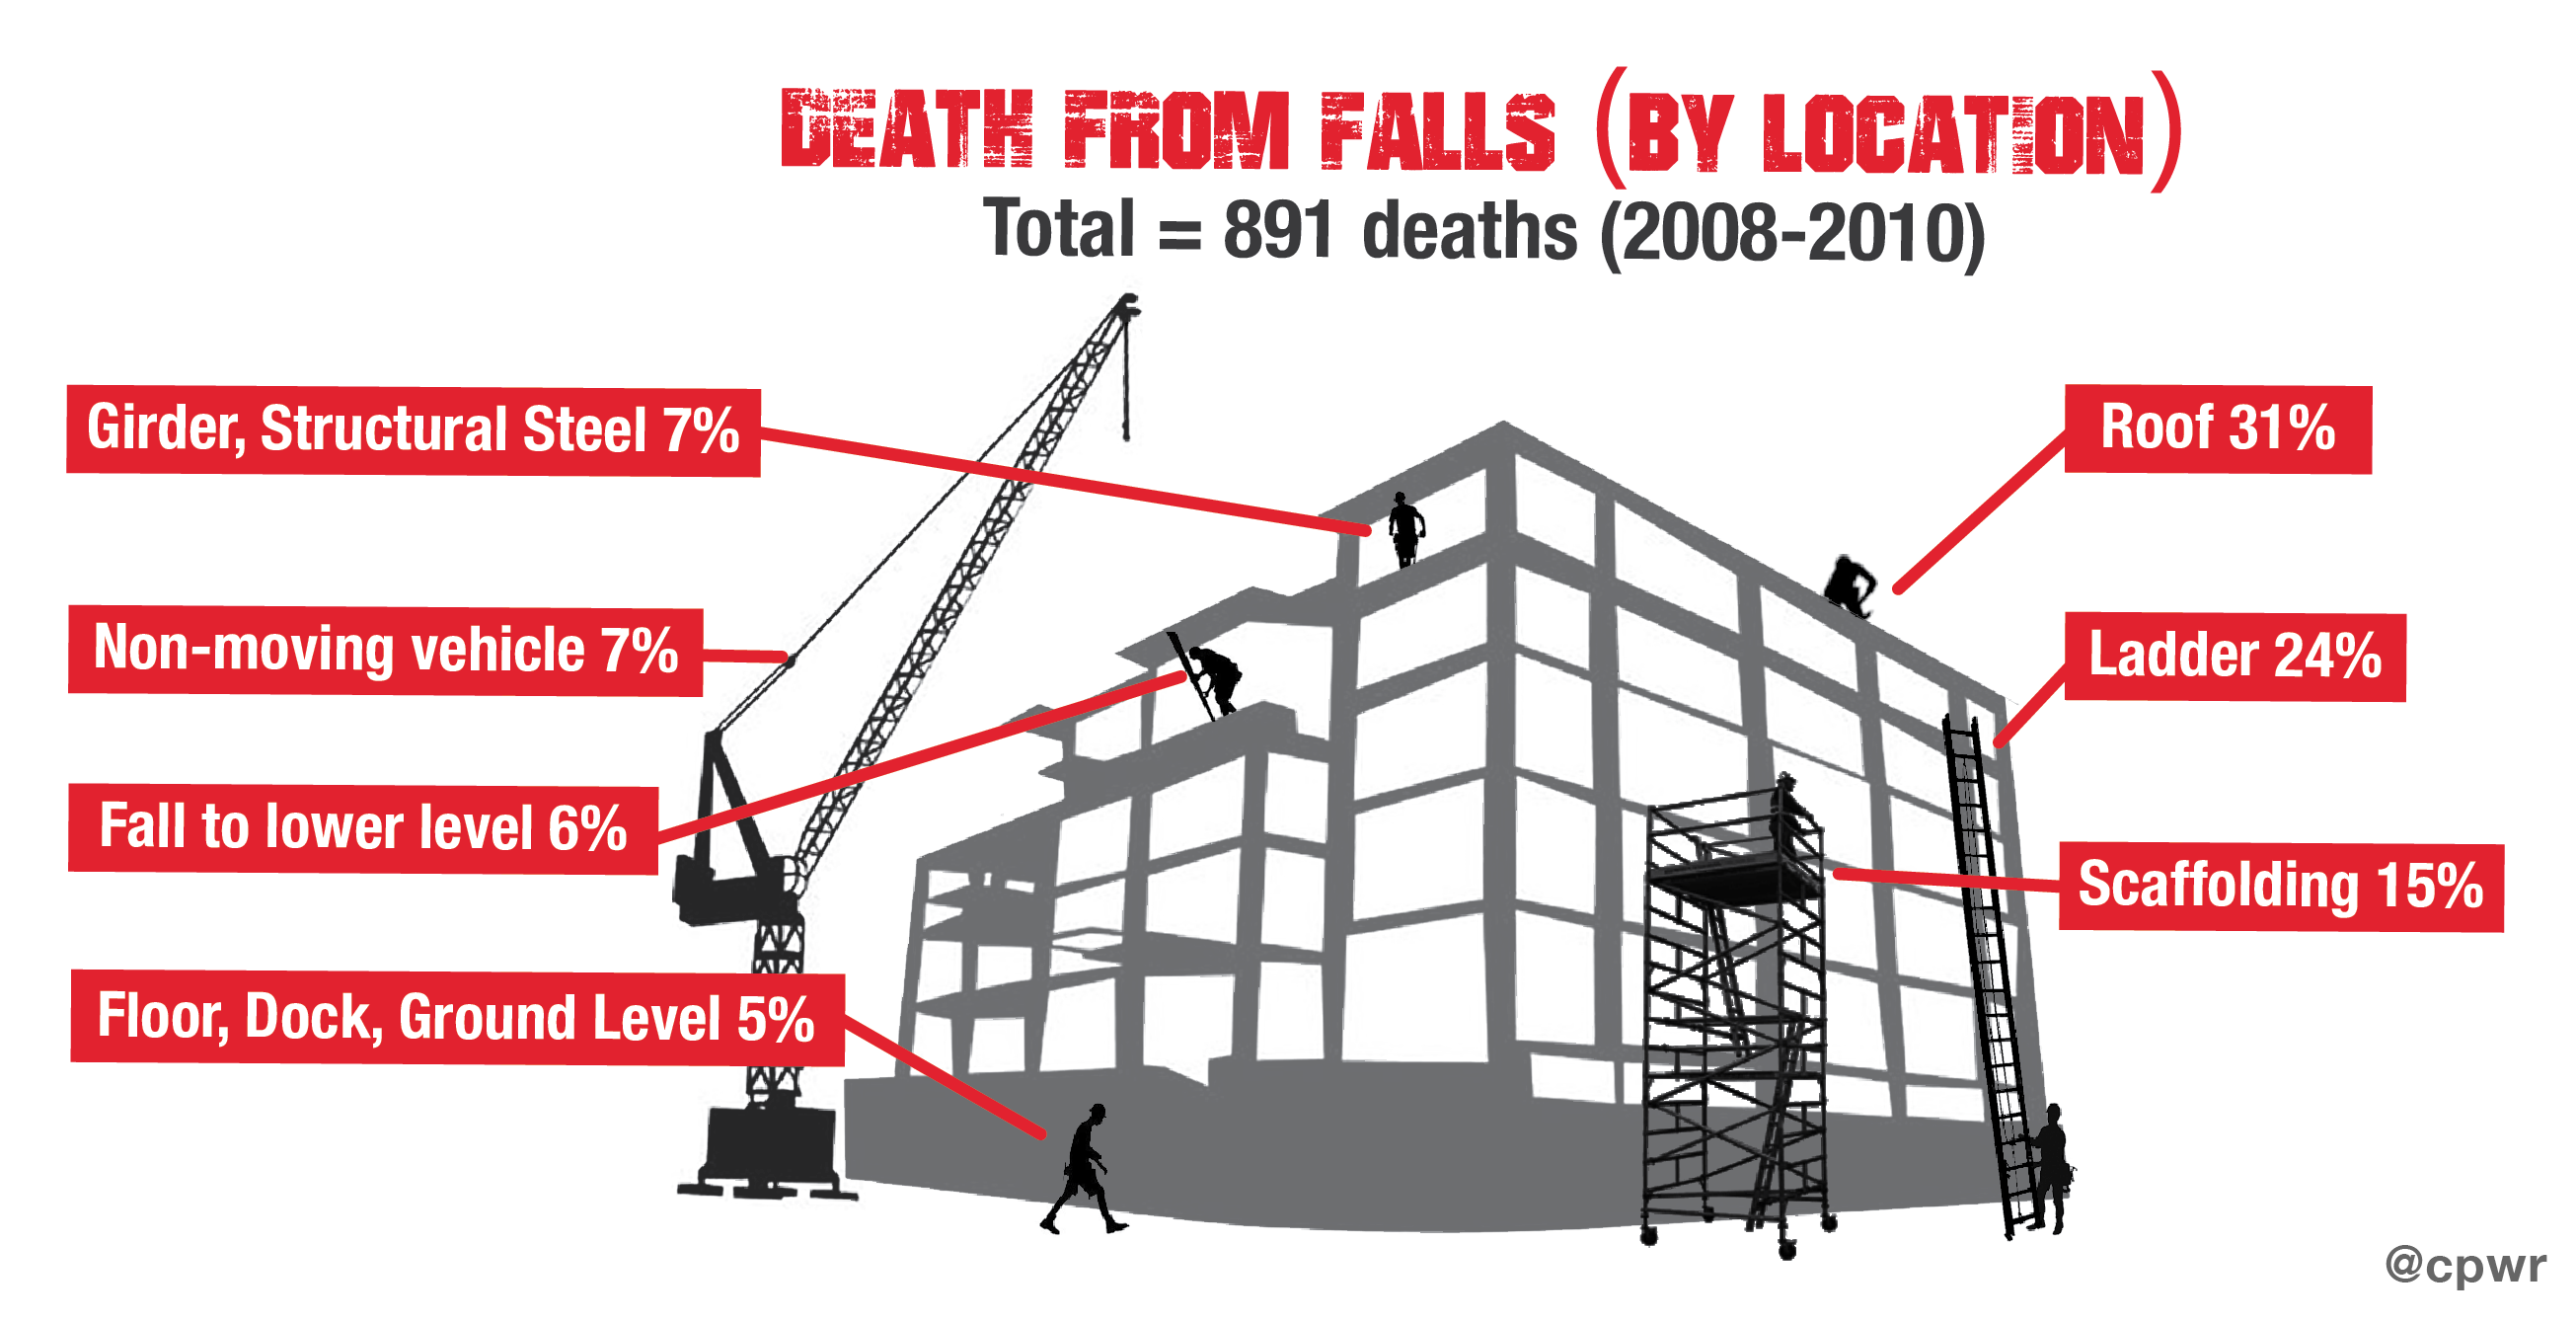 Deaths_from_Falls_by_Location